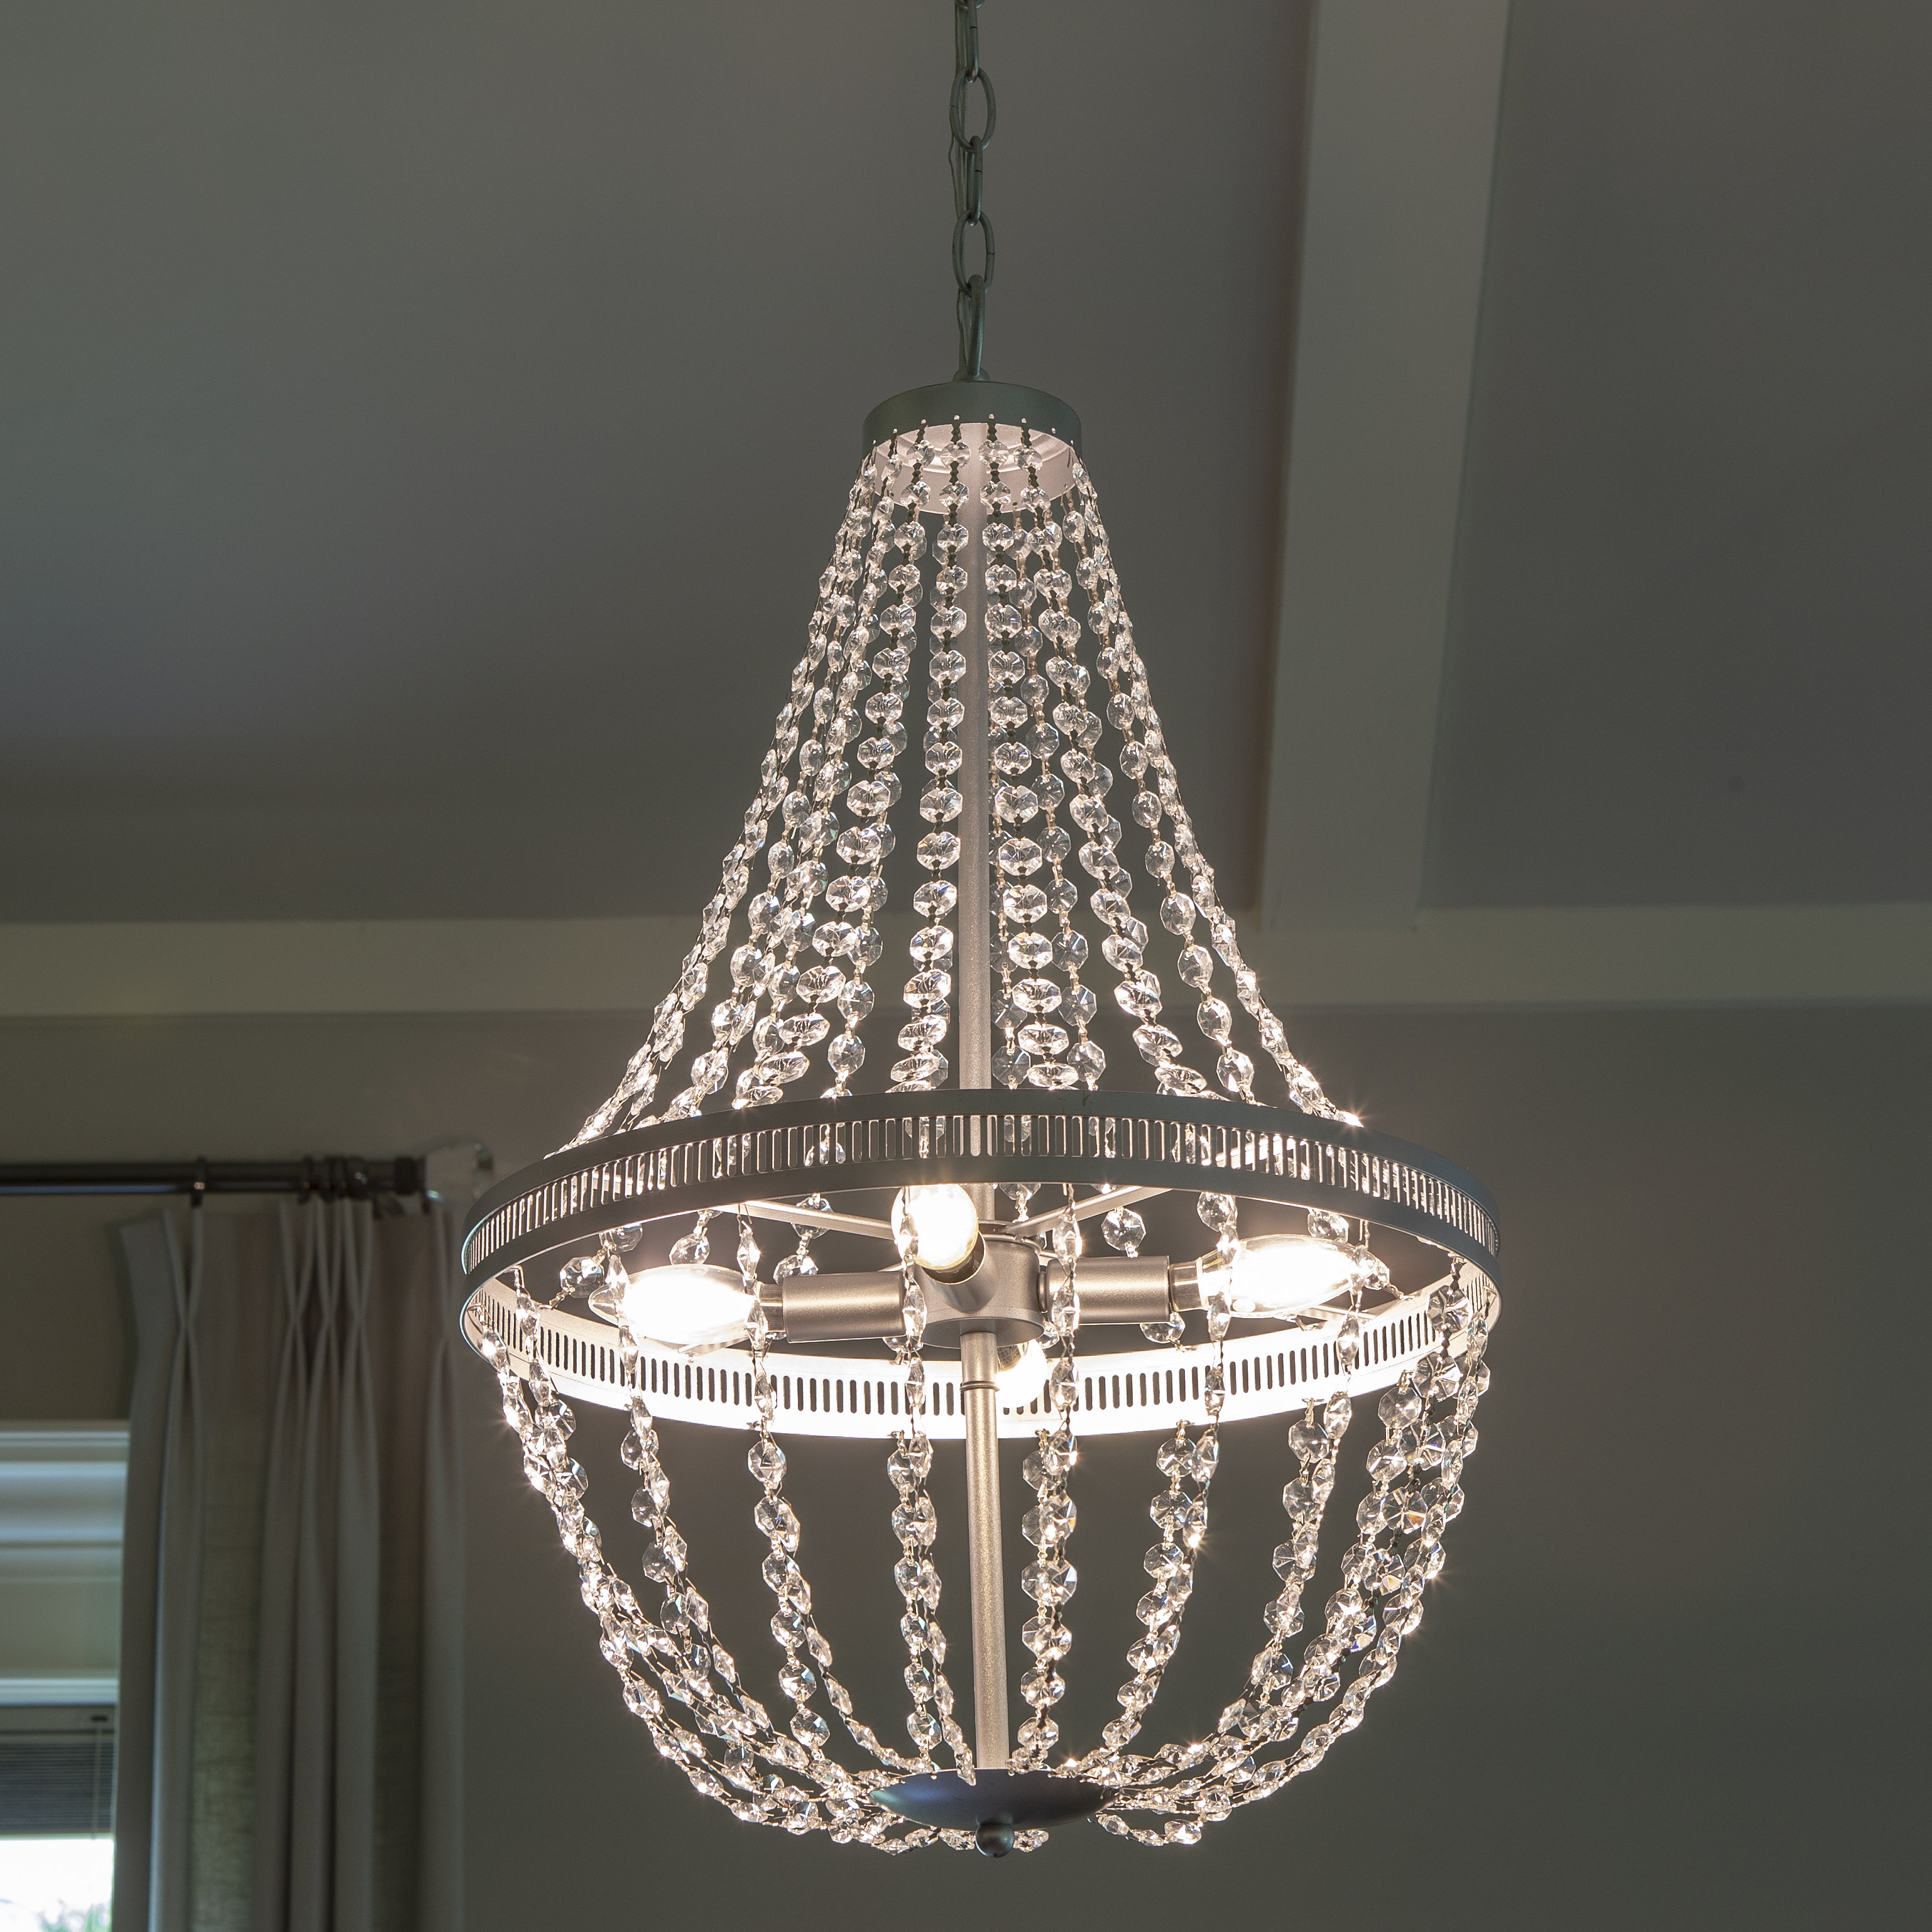 Jill 4 Light Drum Chandeliers Inside Most Up To Date Weidman 4 Light Crystal Chandelier (Gallery 14 of 20)